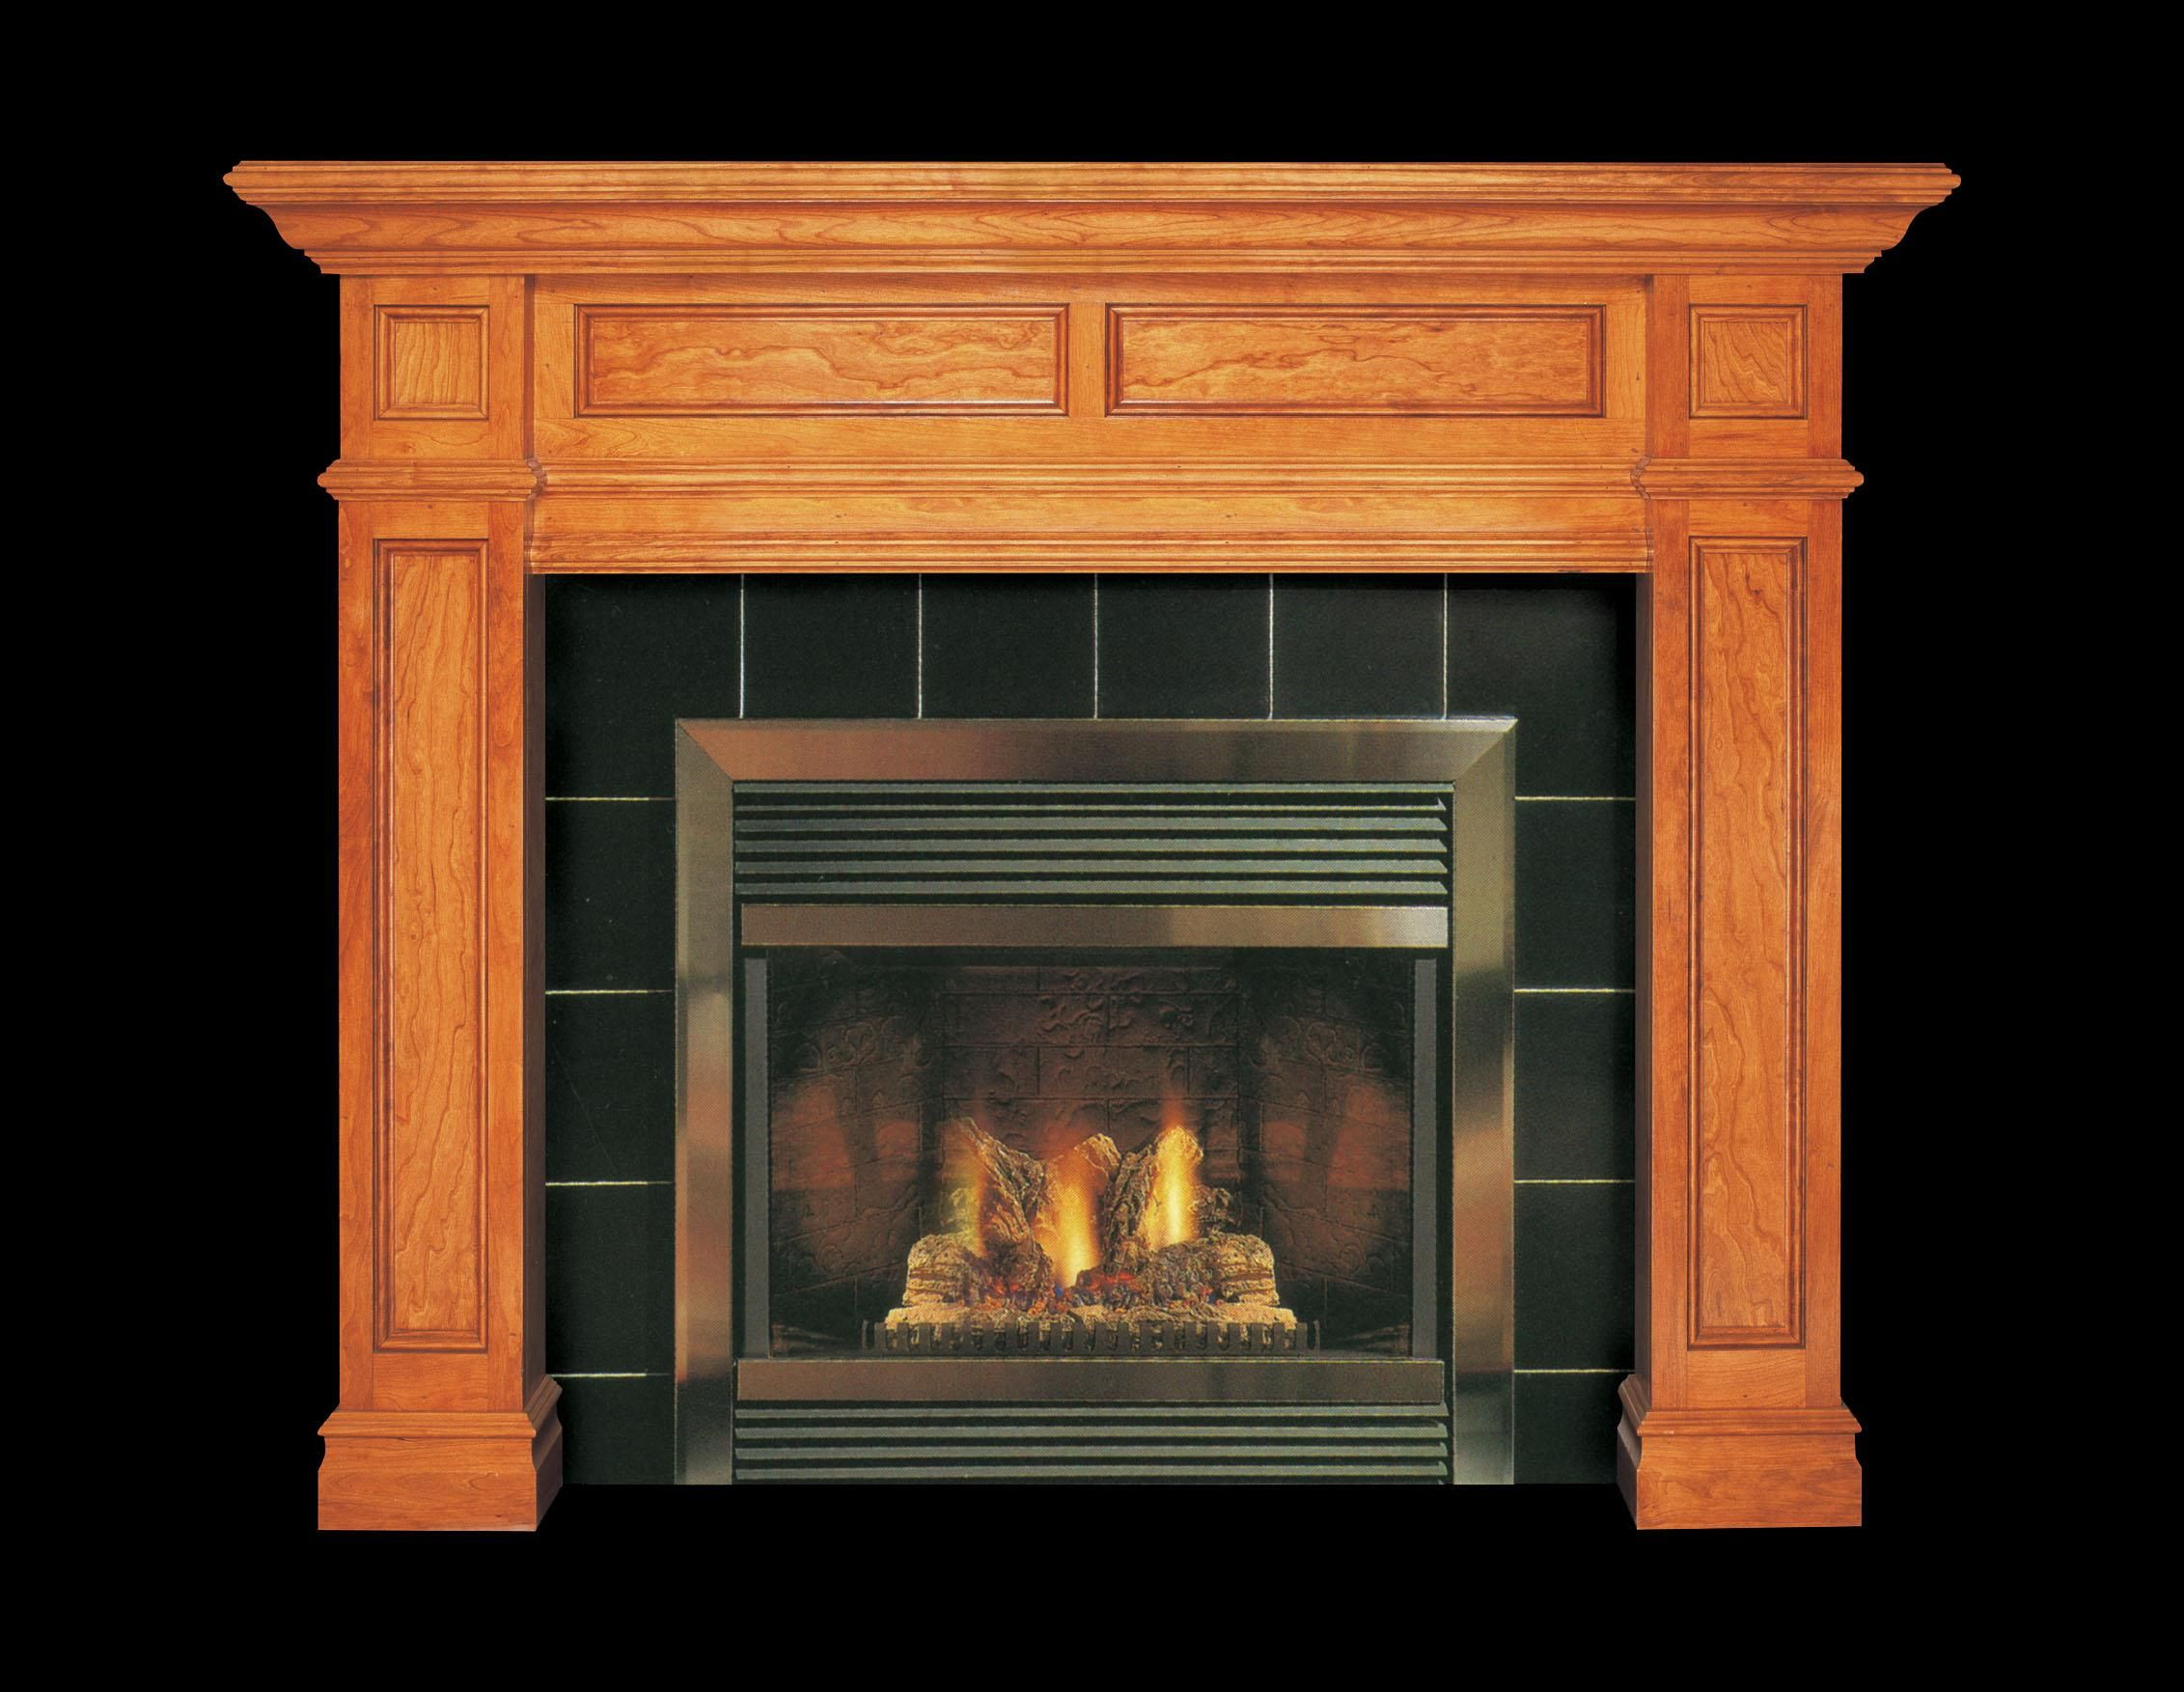 mantels by of gemma restoration mdf villa pearl manufacturers and fine fireplace mantel carter kits pin williams decorative surrounds quality our on victorian furniture wood shelves